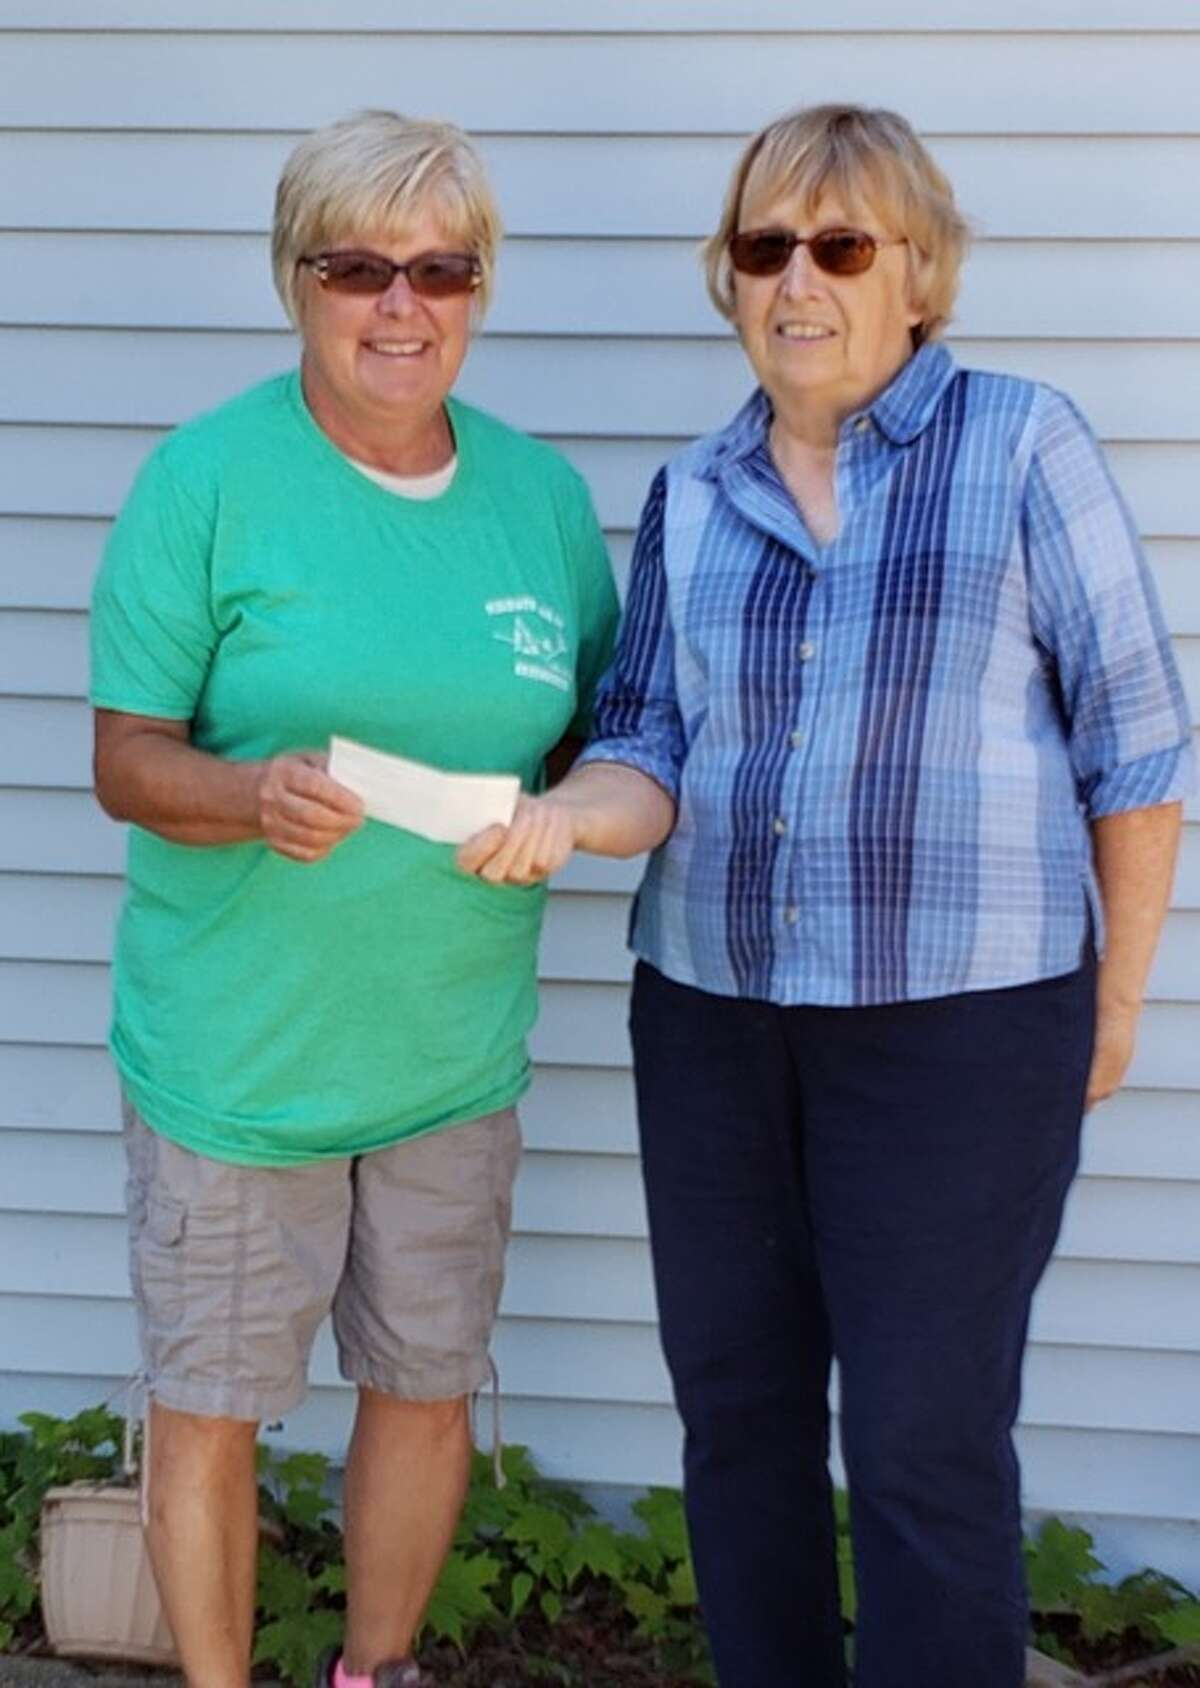 Terri Schmidt, of Peasanton Valley Greenhouse, presents a check to Marian Jarvinen, president of Friends of the Manistee County Library, from the proceeds of a recent fundraiser. Bob and Terri Schmidt are avid supporters of the Manistee County libraries. The donation will support programs like the Children's Summer Reading Program and other needs as they arise. (Courtesy photo)